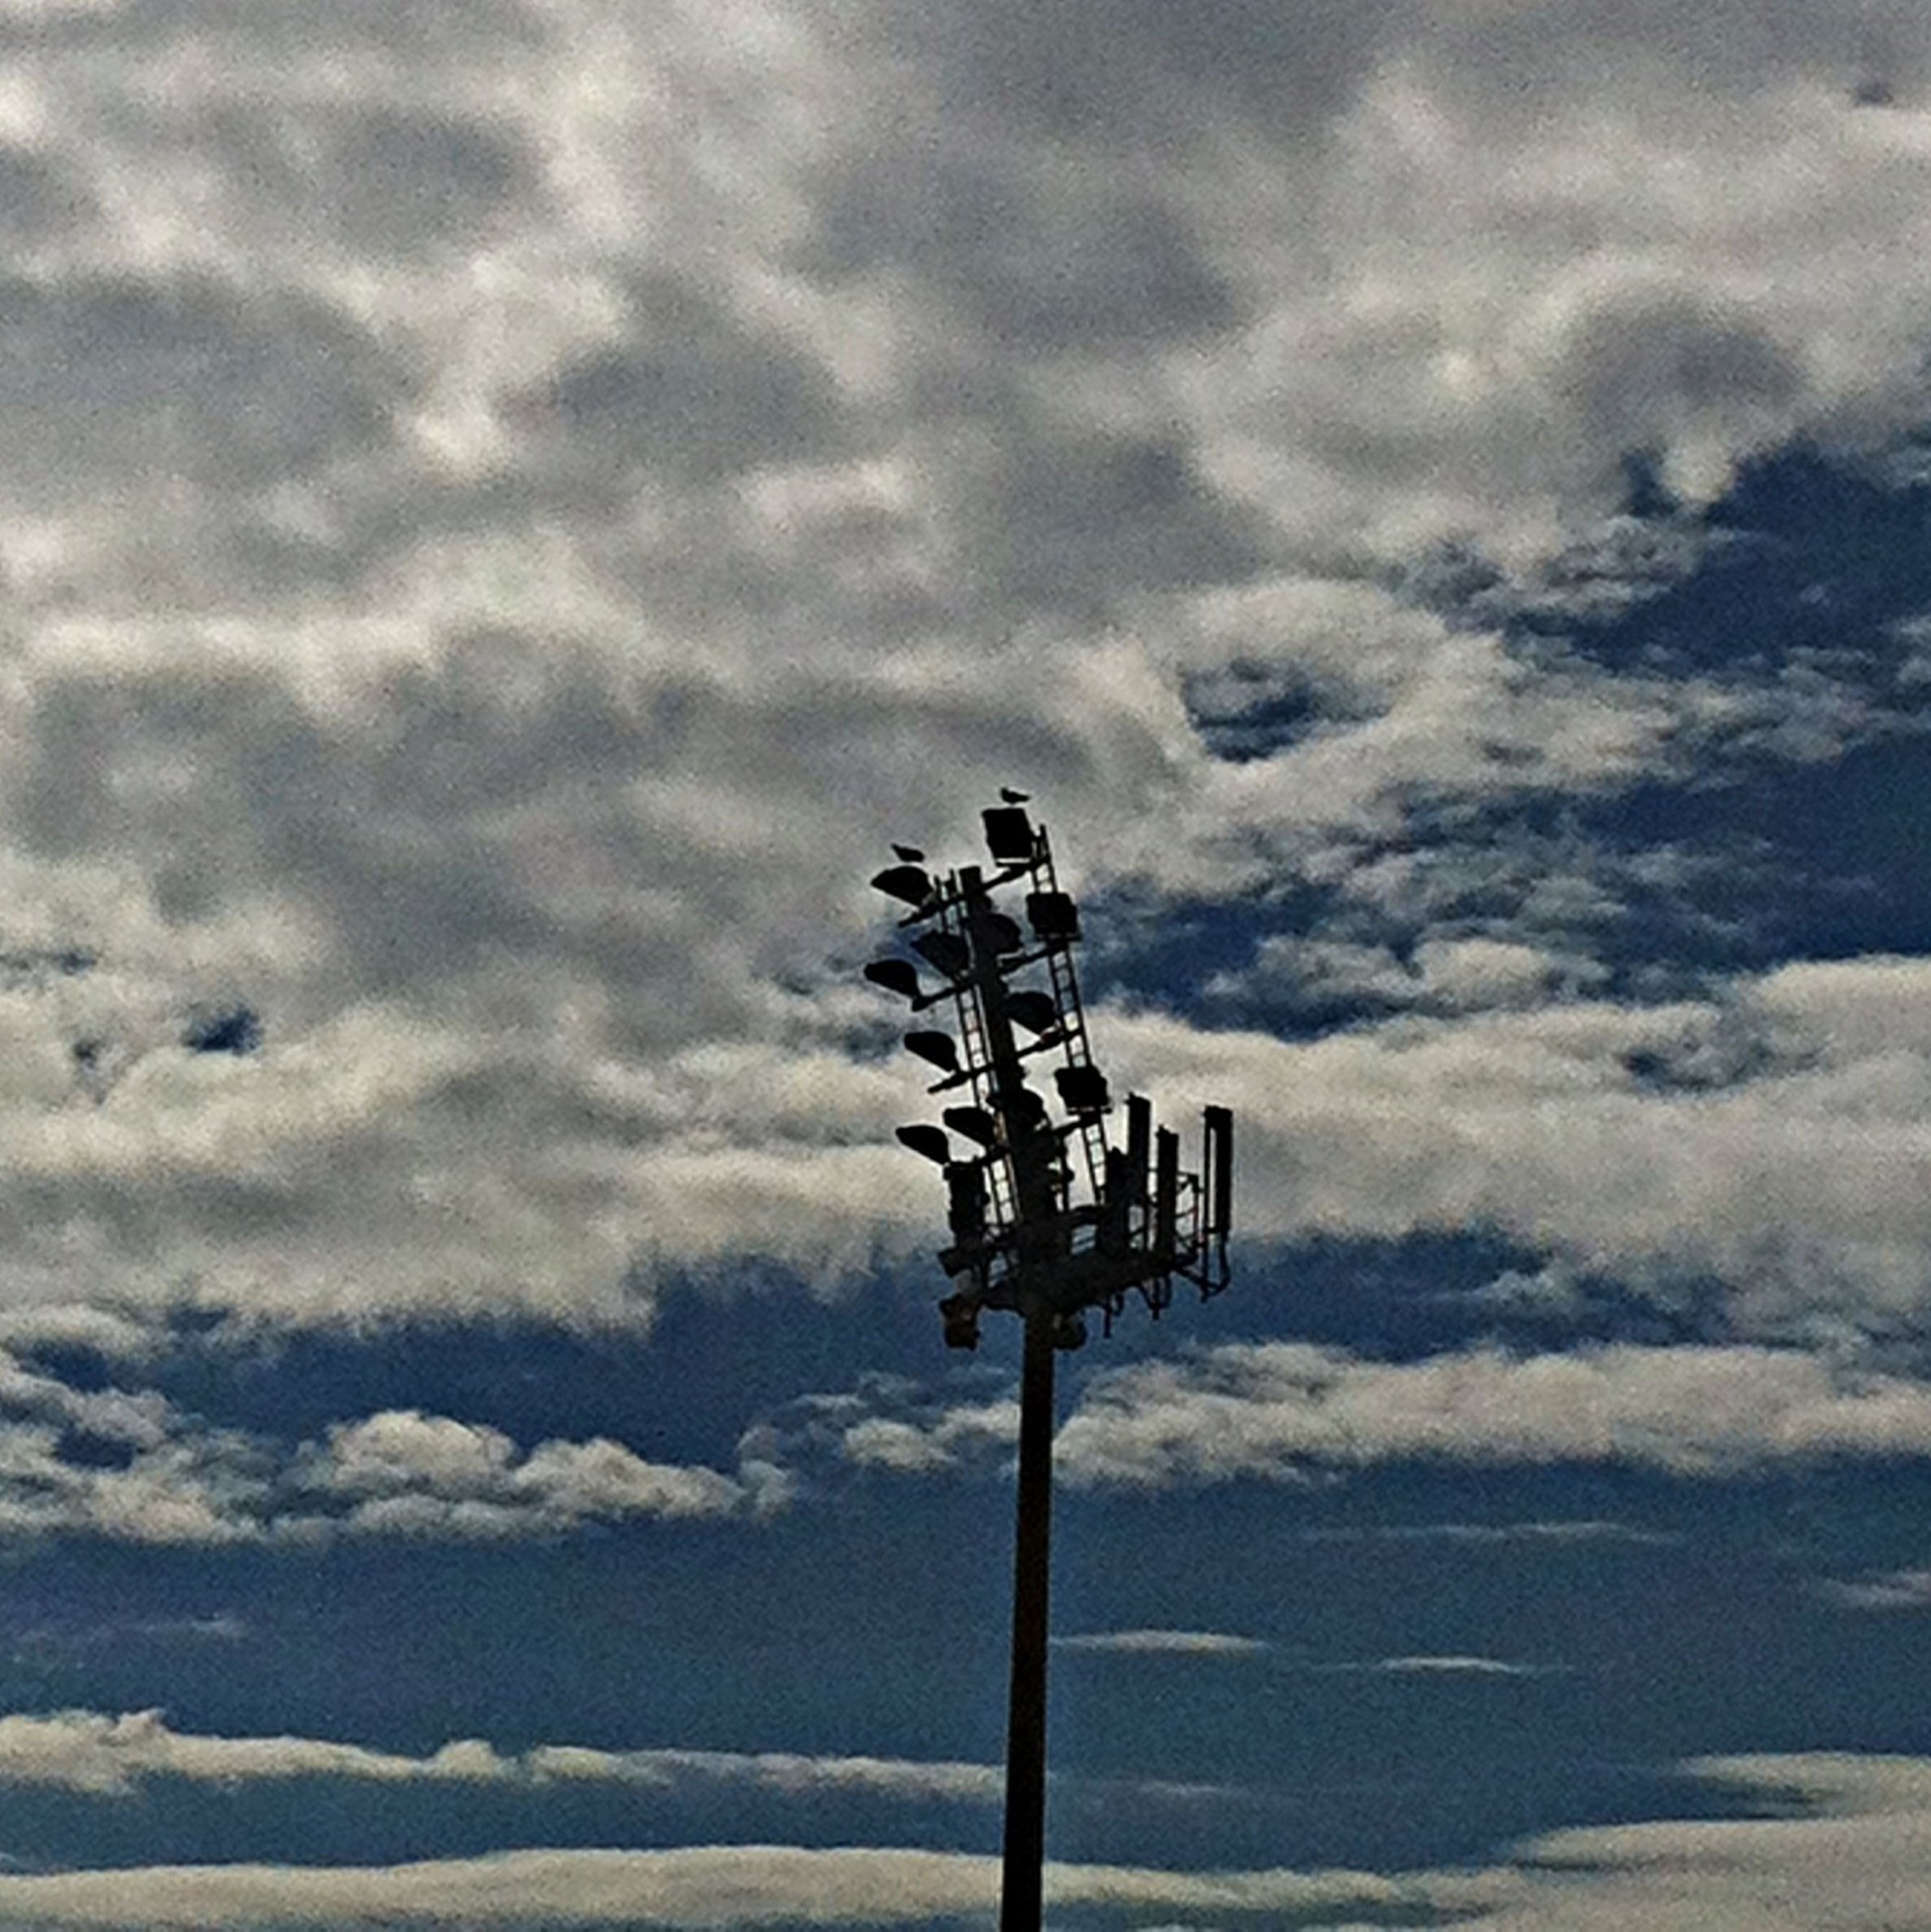 sky, cloud - sky, cloudy, low angle view, weather, street light, overcast, cloud, lighting equipment, tranquility, technology, nature, silhouette, outdoors, day, pole, no people, electricity, scenics, tranquil scene